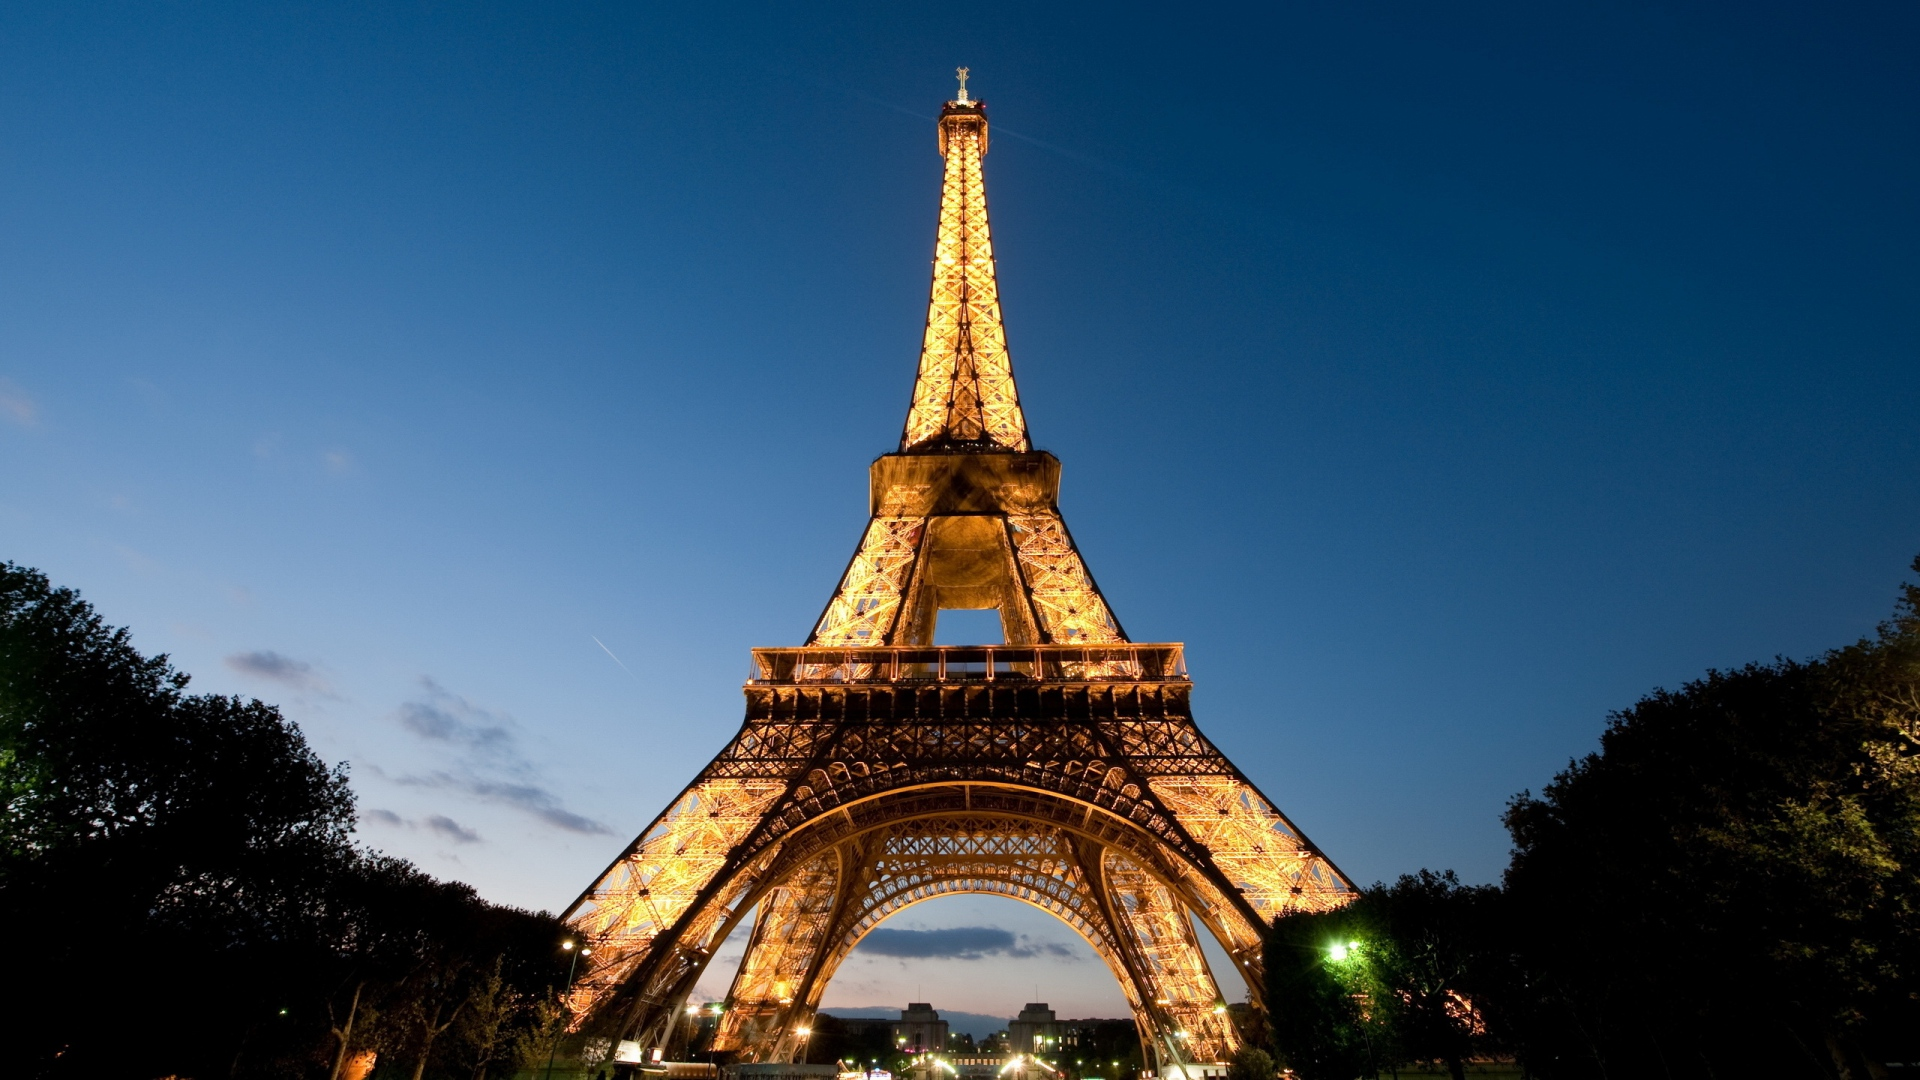 Eiffel-Tower-Pictures-History